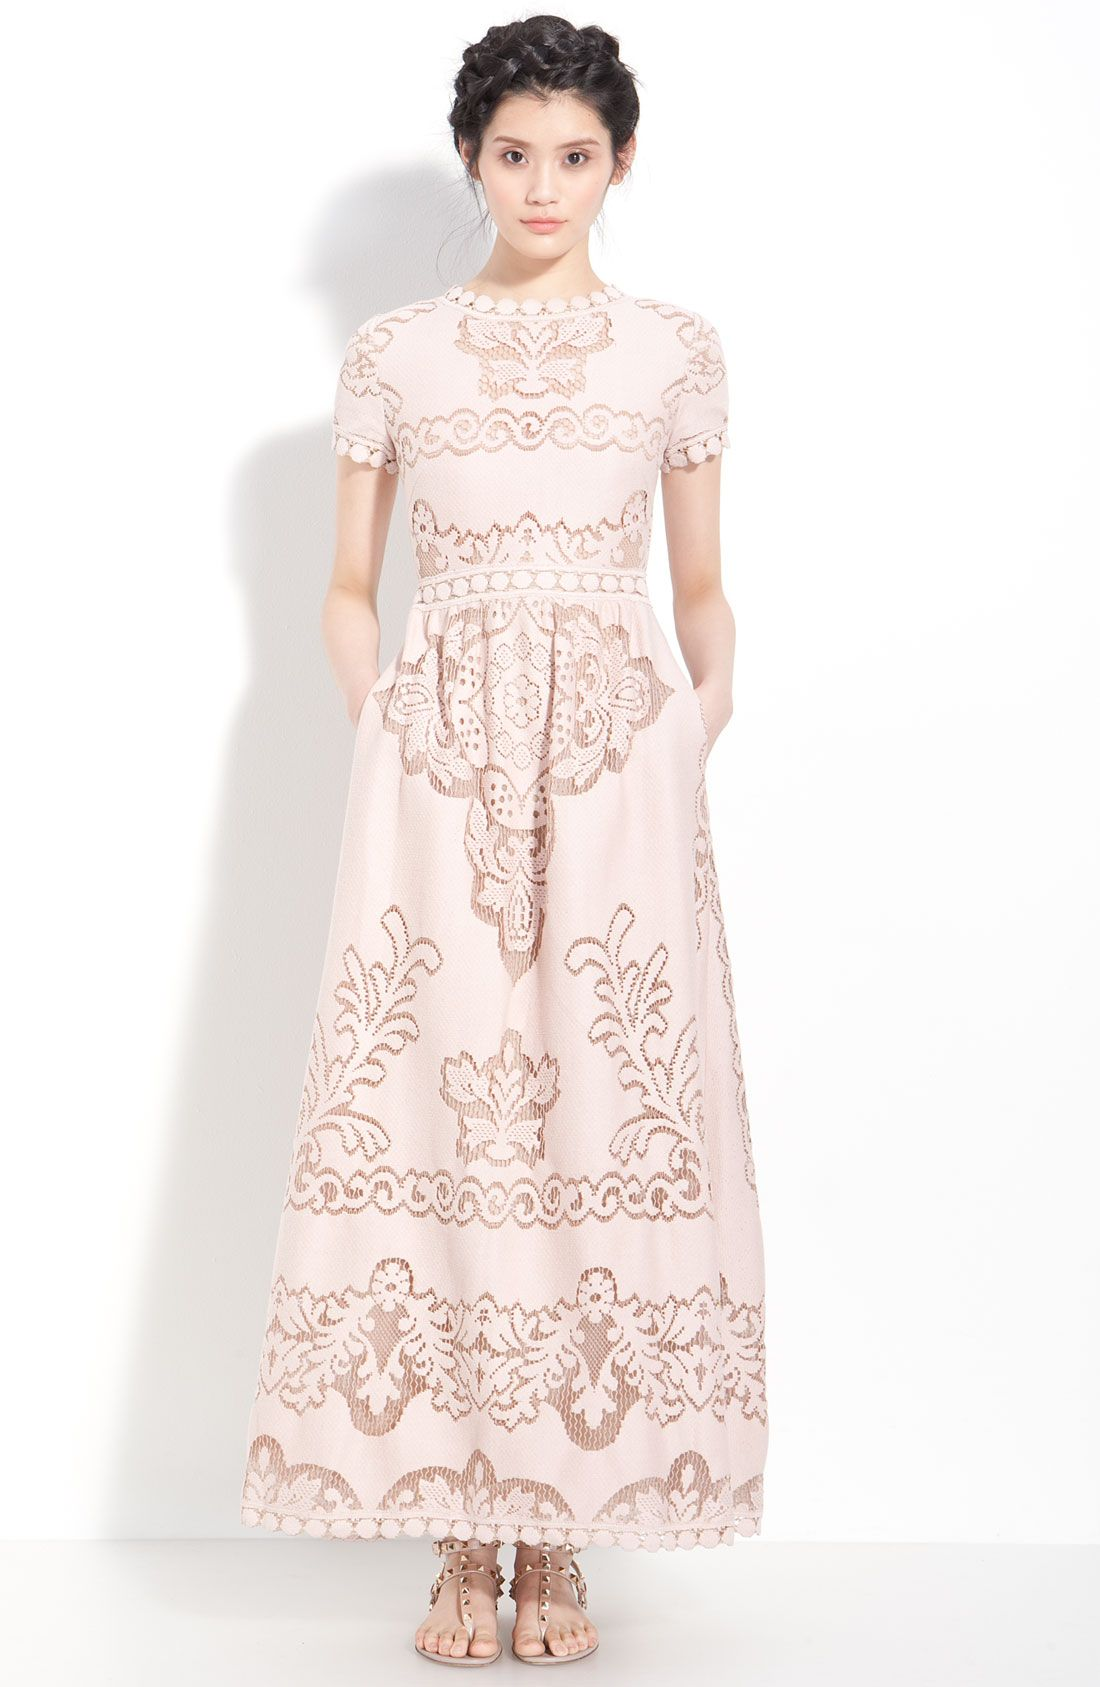 Valentino point de flandres lace gown bridal shower and rehearsal